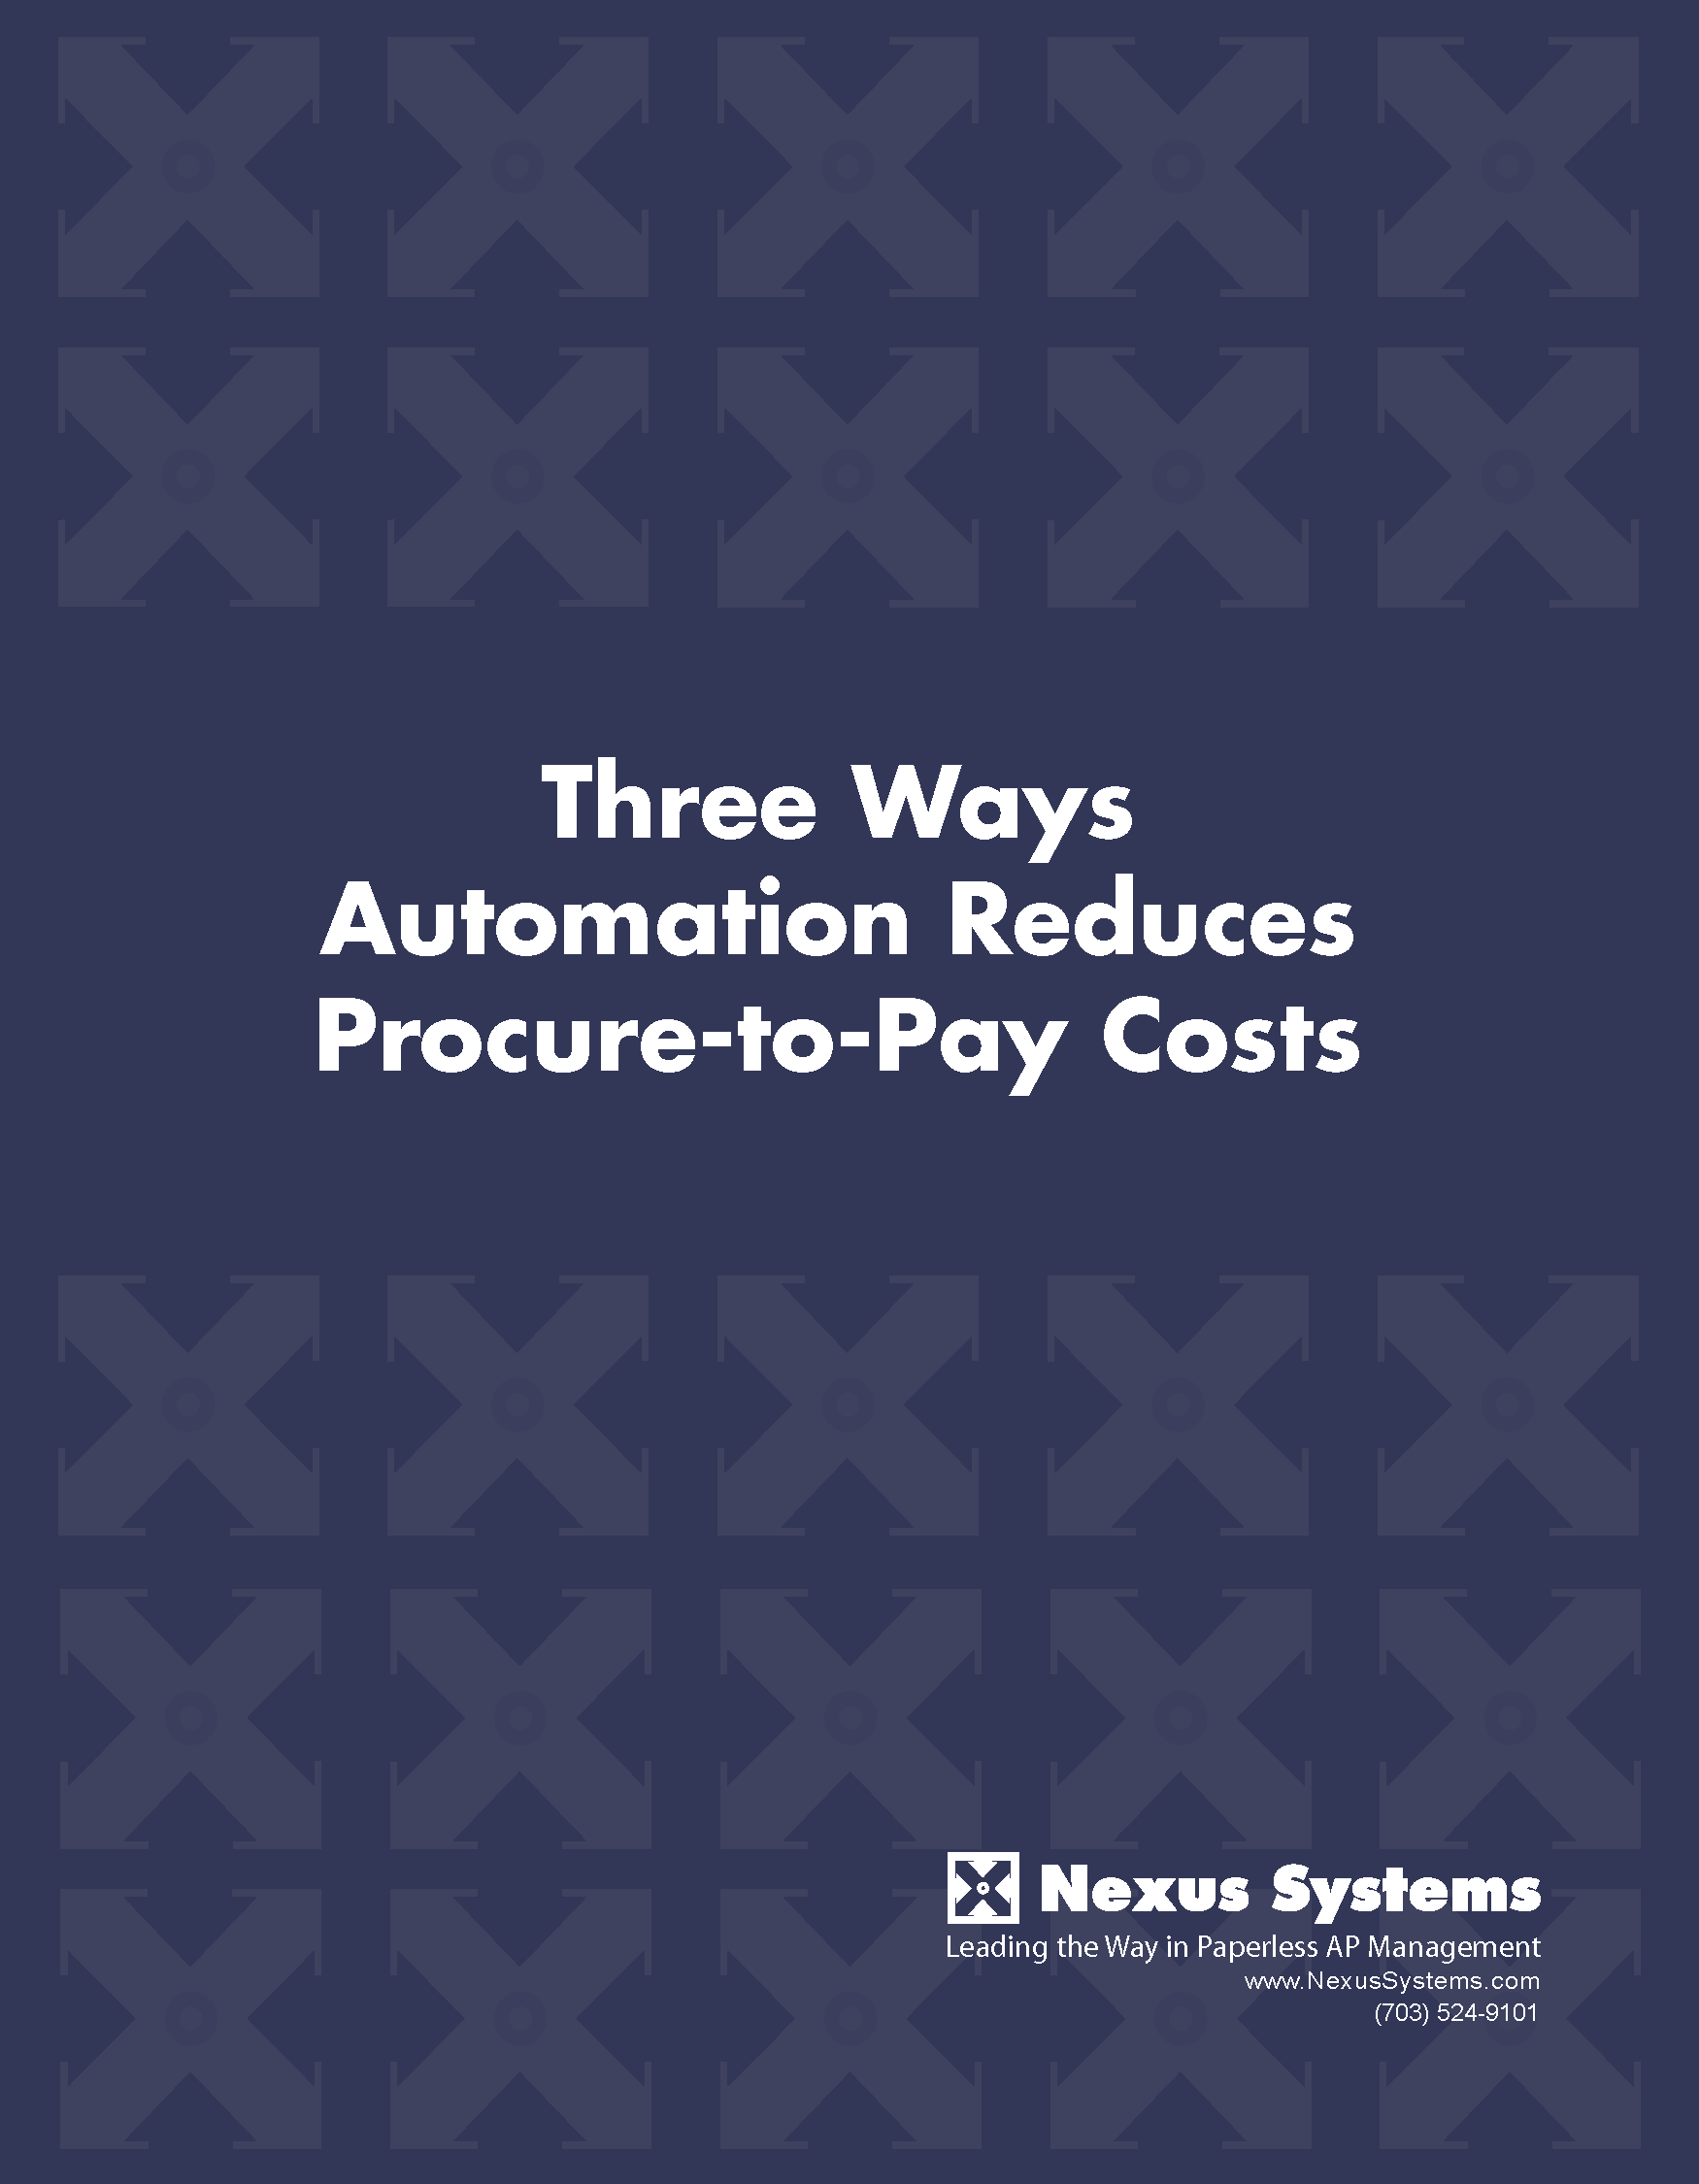 Automation reduces procure-to-pay costs